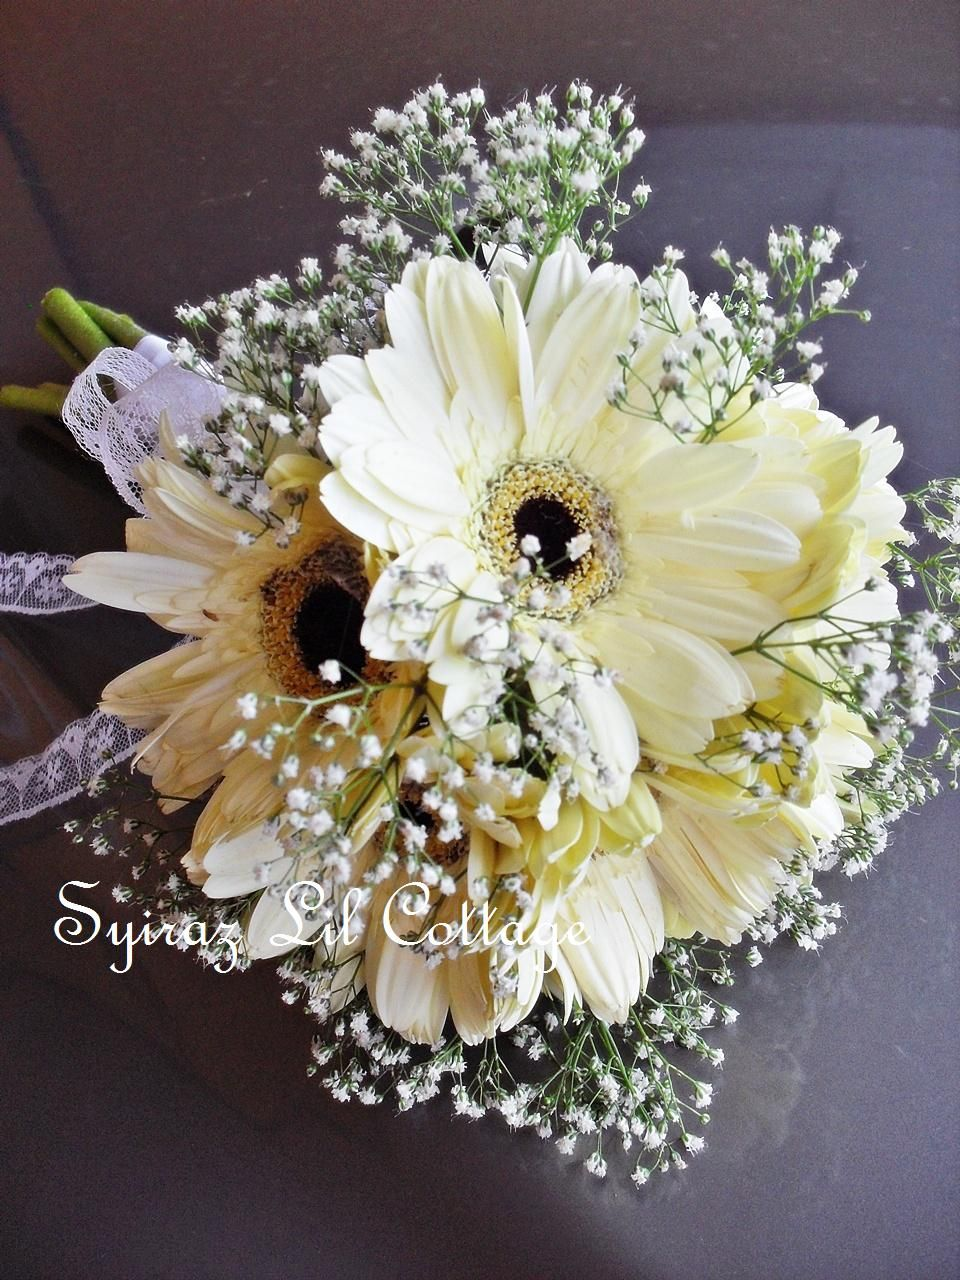 Cheap fresh flower wedding bouquets gerbera wedding bouquets cheap fresh flower wedding bouquets gerbera wedding bouquets gerbera wedding flowers izmirmasajfo Gallery